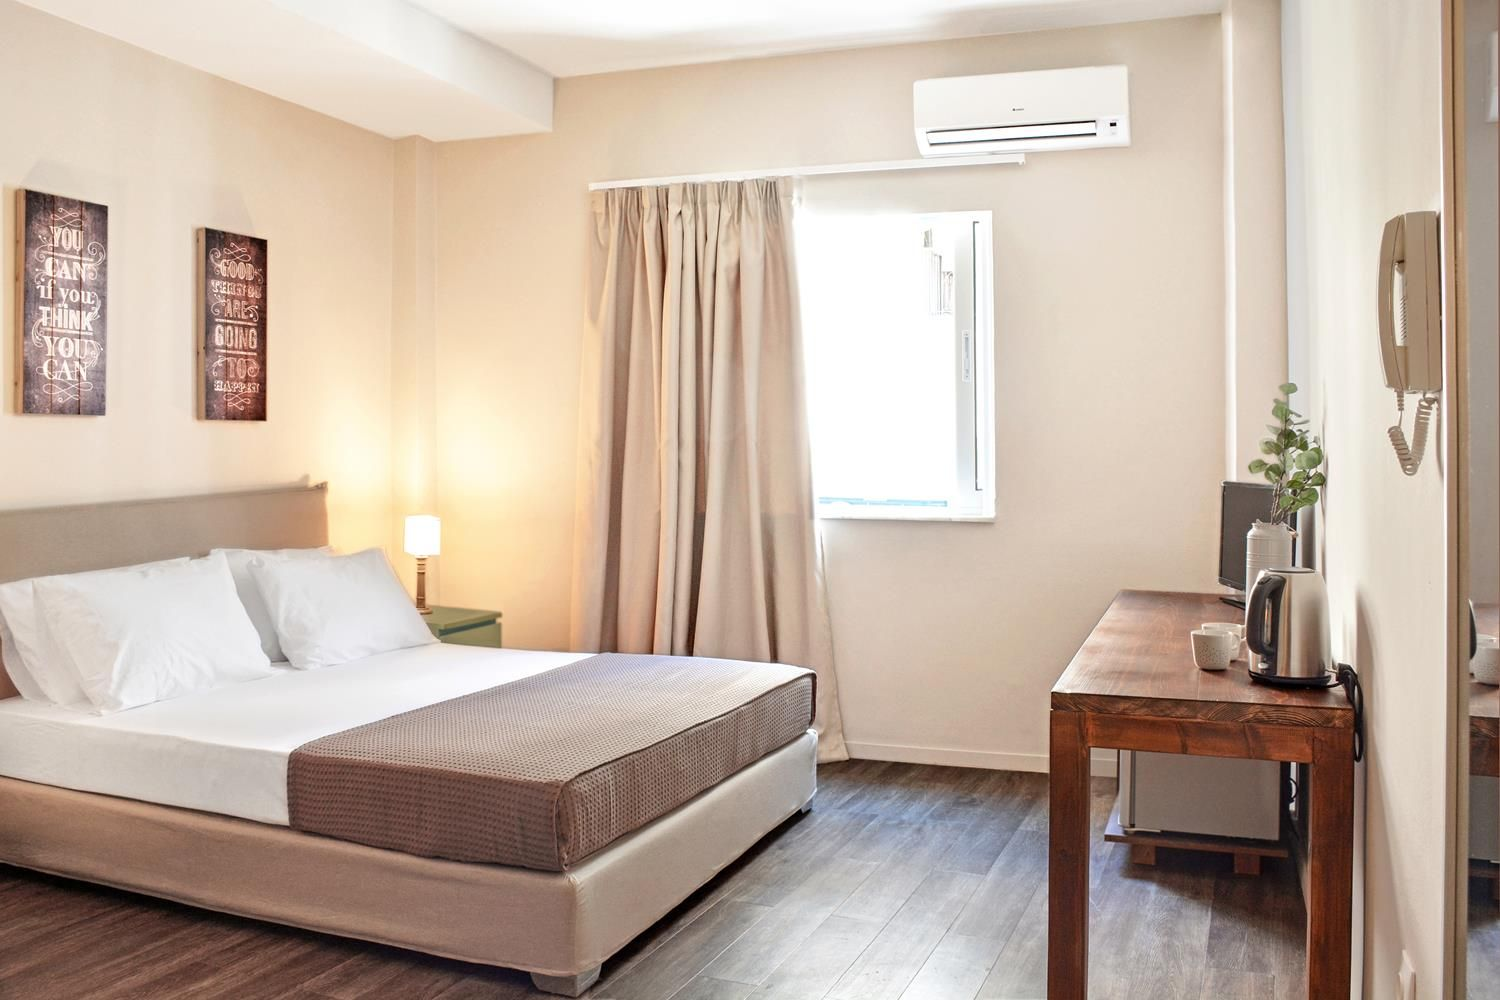 Athens Connection Apartments - Αθηνα ✦ 2 Ημερες (1 Διανυκτερευση) ✦ 2 ατομα ✦ Χωρις Πρωινο ✦ εως 30/04/2021 ✦ Free WiFi